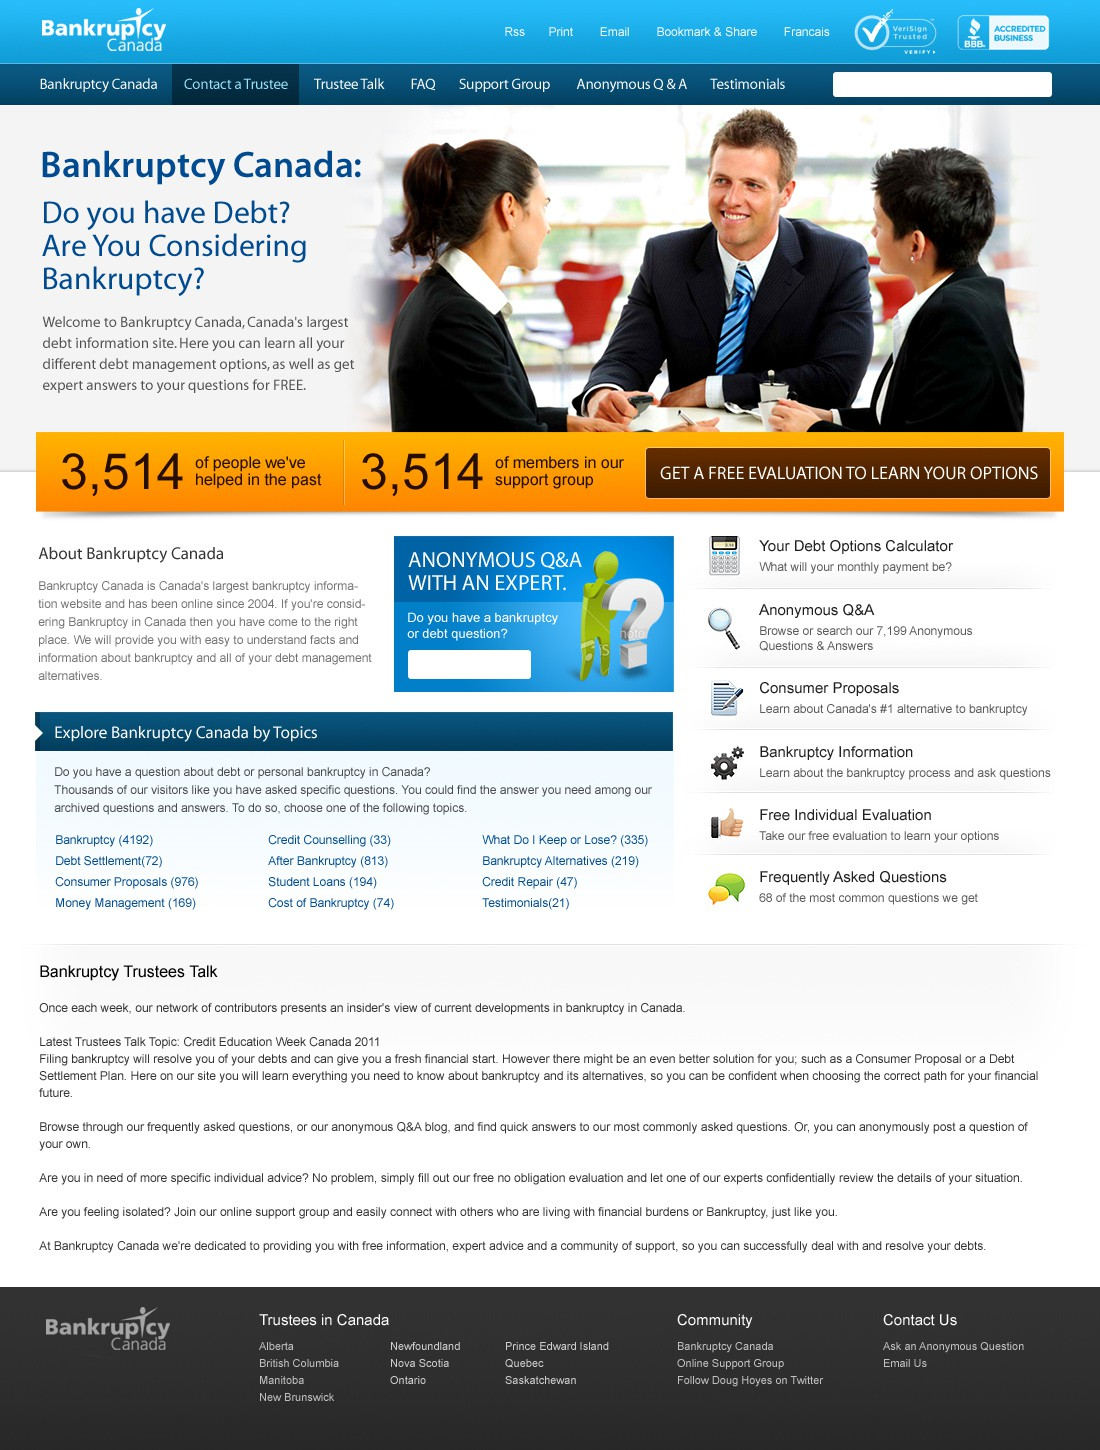 Create the next website design for Bankruptcy Canada